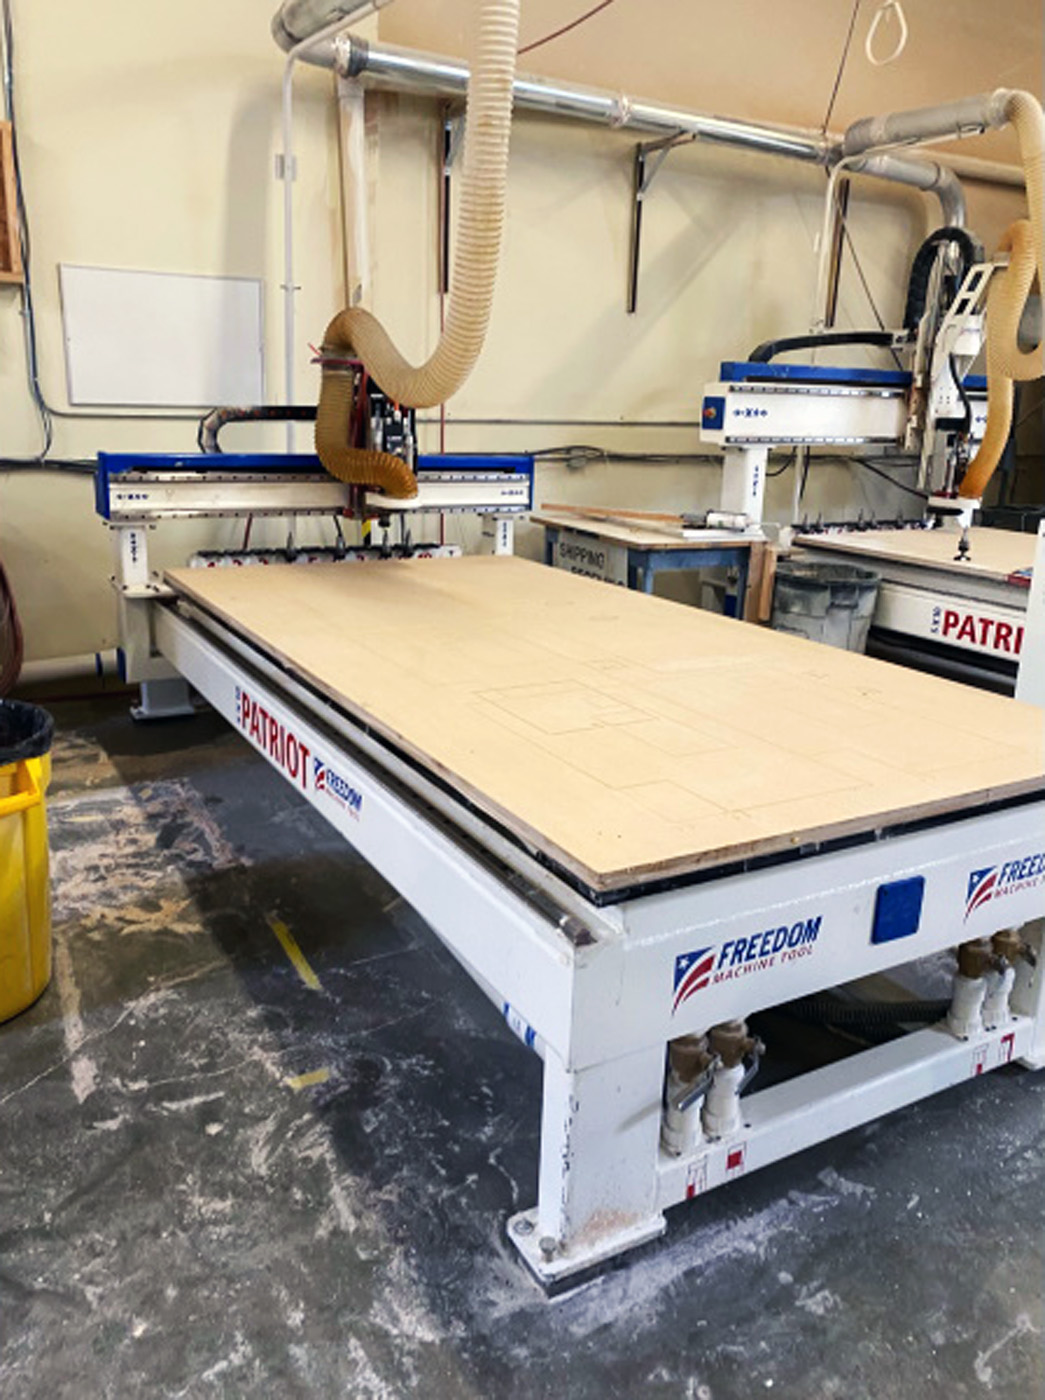 FMT Patriot 3 Axis CNC Router C635